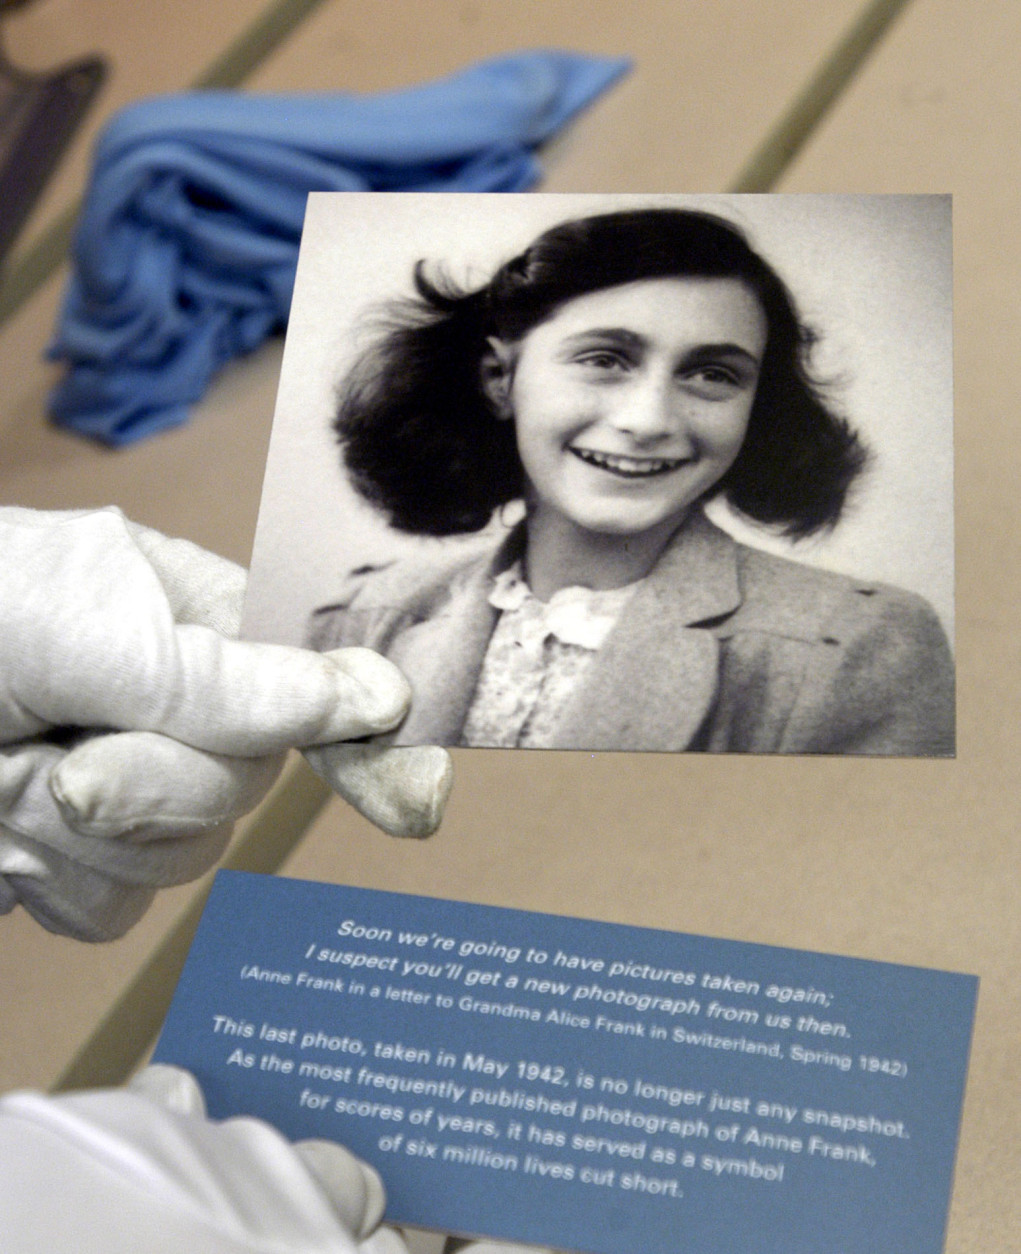 The most frequently published photograph of Anne Frank is prepared for display Tuesday, Aug. 3, 2004, at the Holocaust Museum Houston. The photo is one of dozens from the Frank family album to be on exhibit at the museum from Thursday through Dec. 31. Anne Franks' diary was published after the end of World War II making her arguably the most famous of the nearly 6 million victims of Hitler's attempt to exterminate the Jews. (AP Photo/Pat Sullivan)